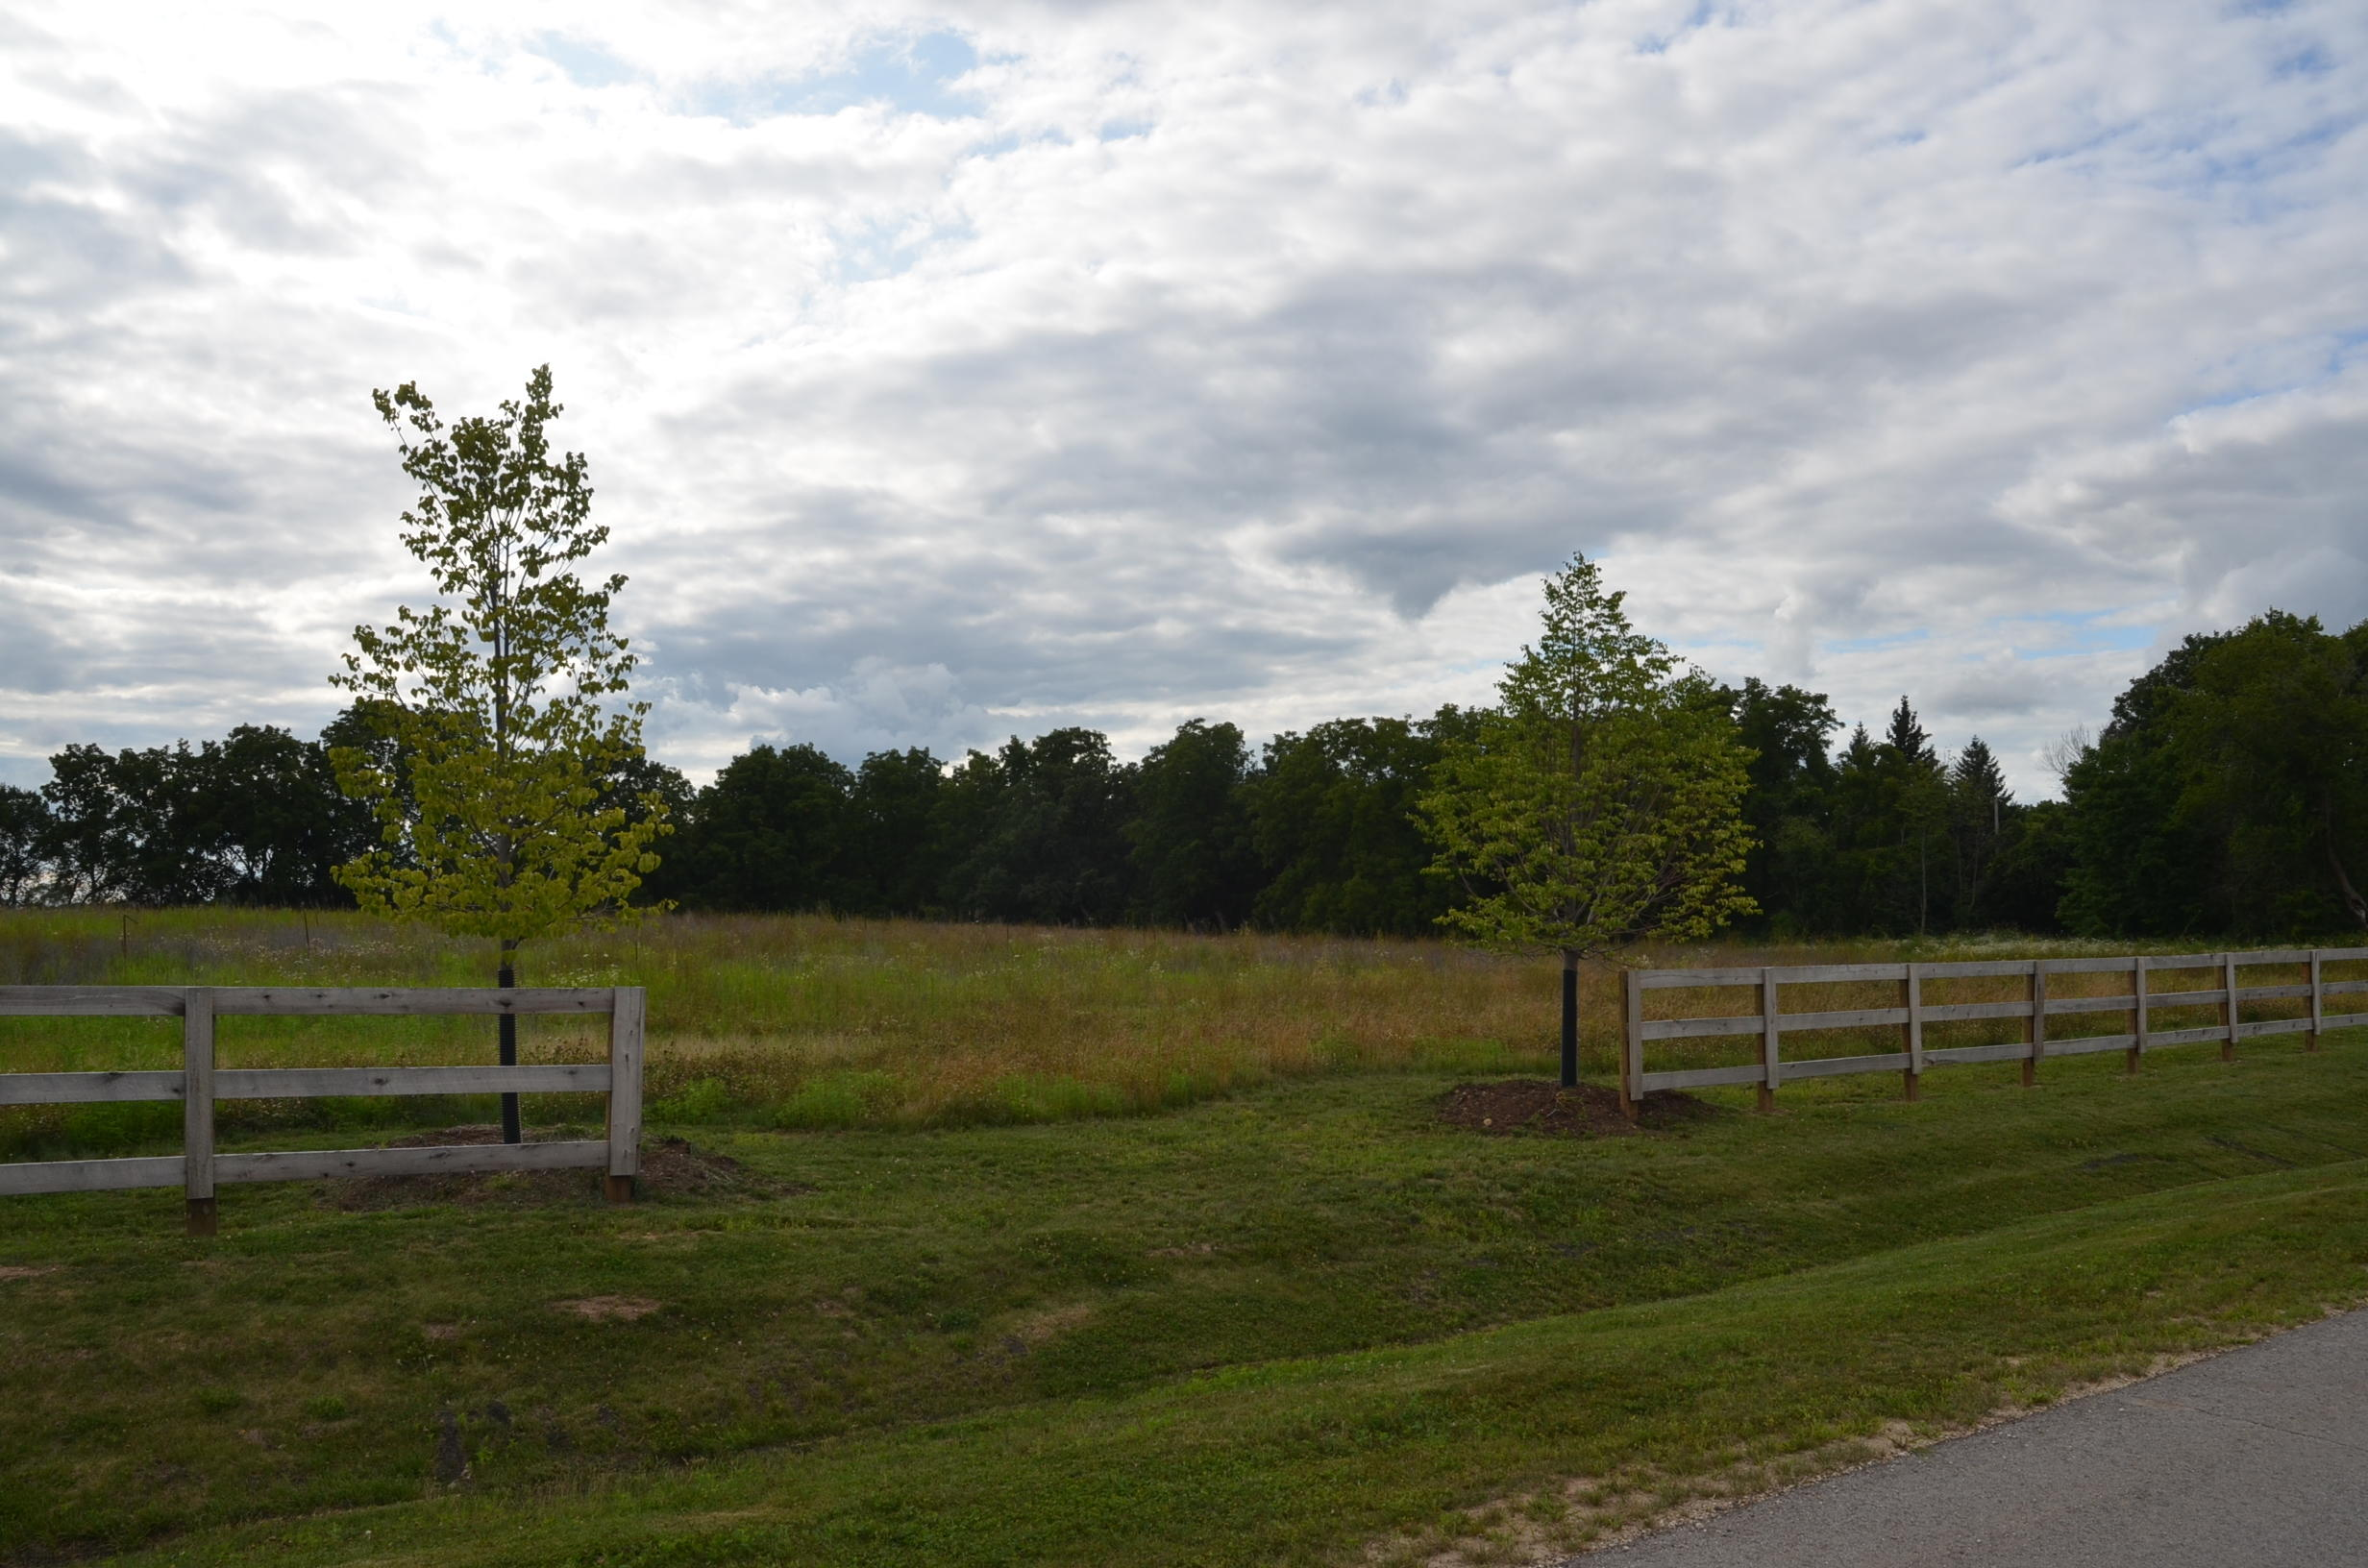 W339S177 Foxtail Ct, Delafield, Wisconsin 53018, ,Vacant Land,For Sale,Foxtail Ct,1597883